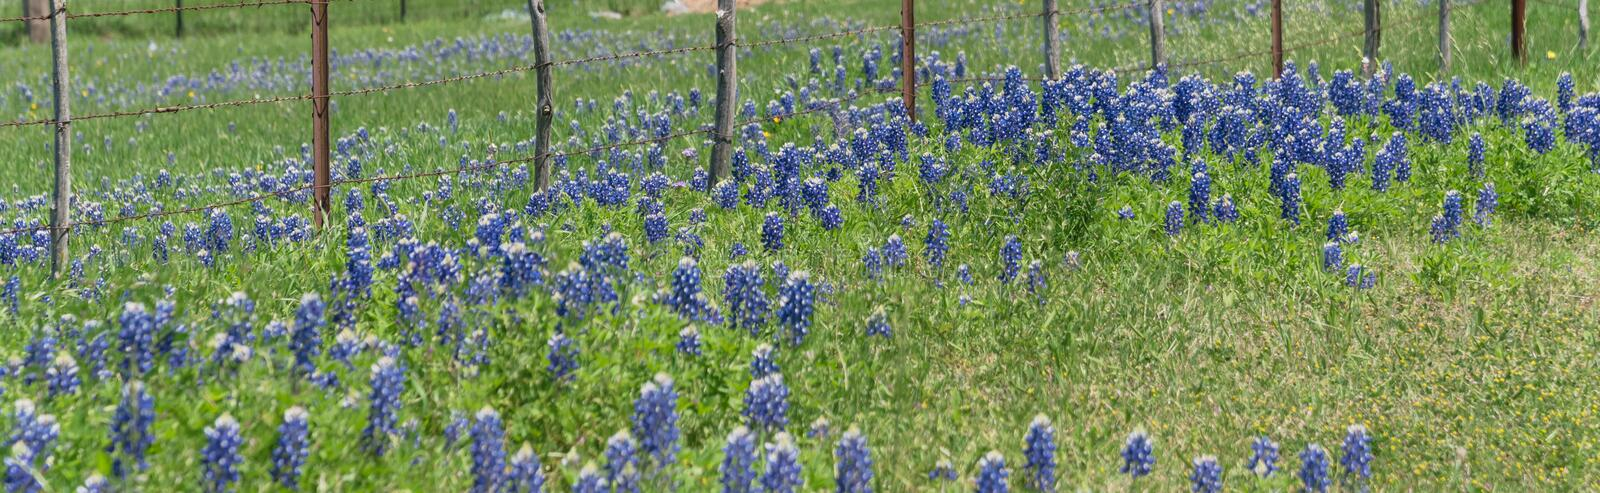 Panoramiczne blossom bluebonnet fields with rustic fence in country place of Texas, America zdjęcie royalty free